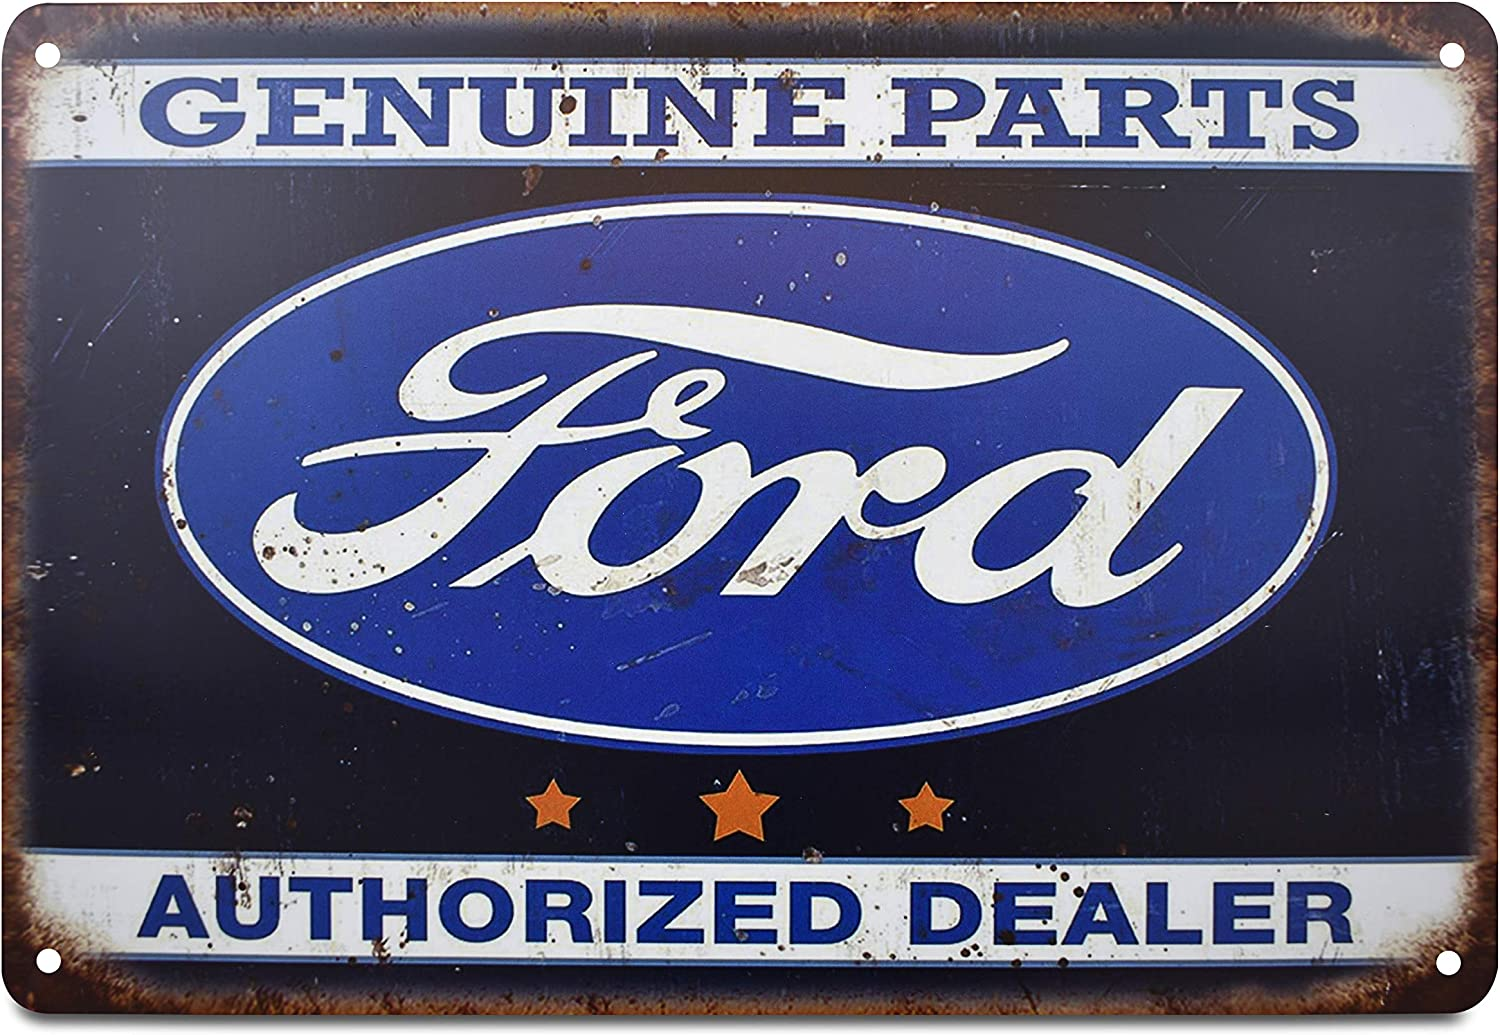 K&H Ford Authorized Dealer Retro Distressed Metal Tin Sign Posters Wall Decor 12X8-Inch (Ford)